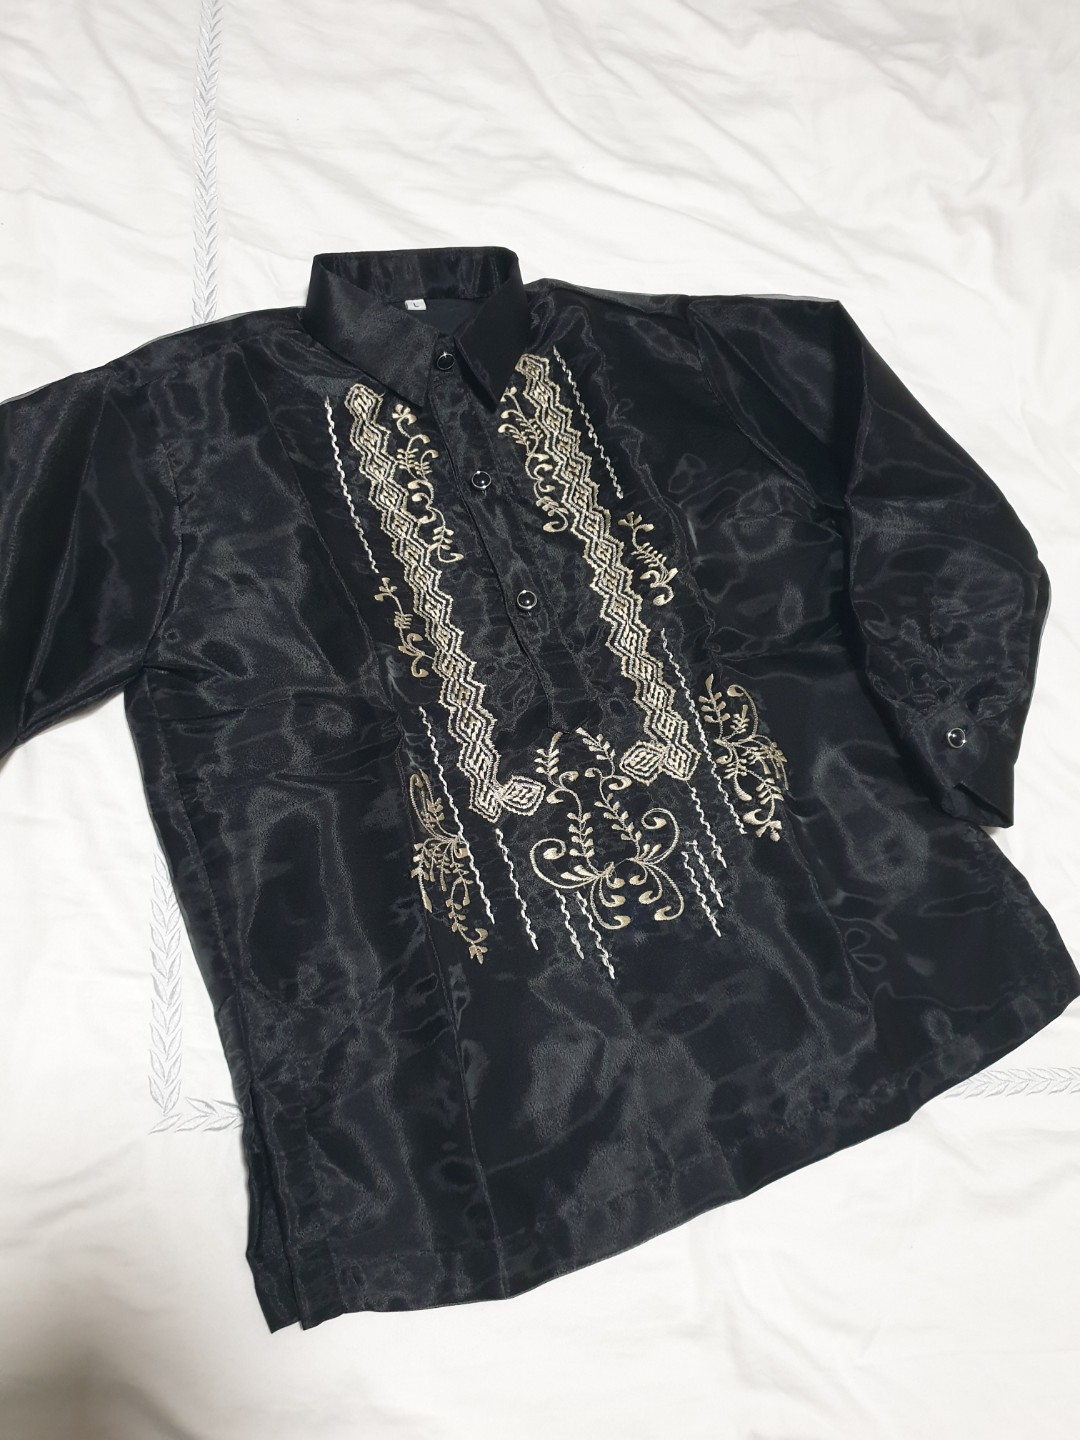 BARONG TAGALOG FOR BOYS  SIZE 6  MAY FIT TO 5-6 YEARS OLD BOYS